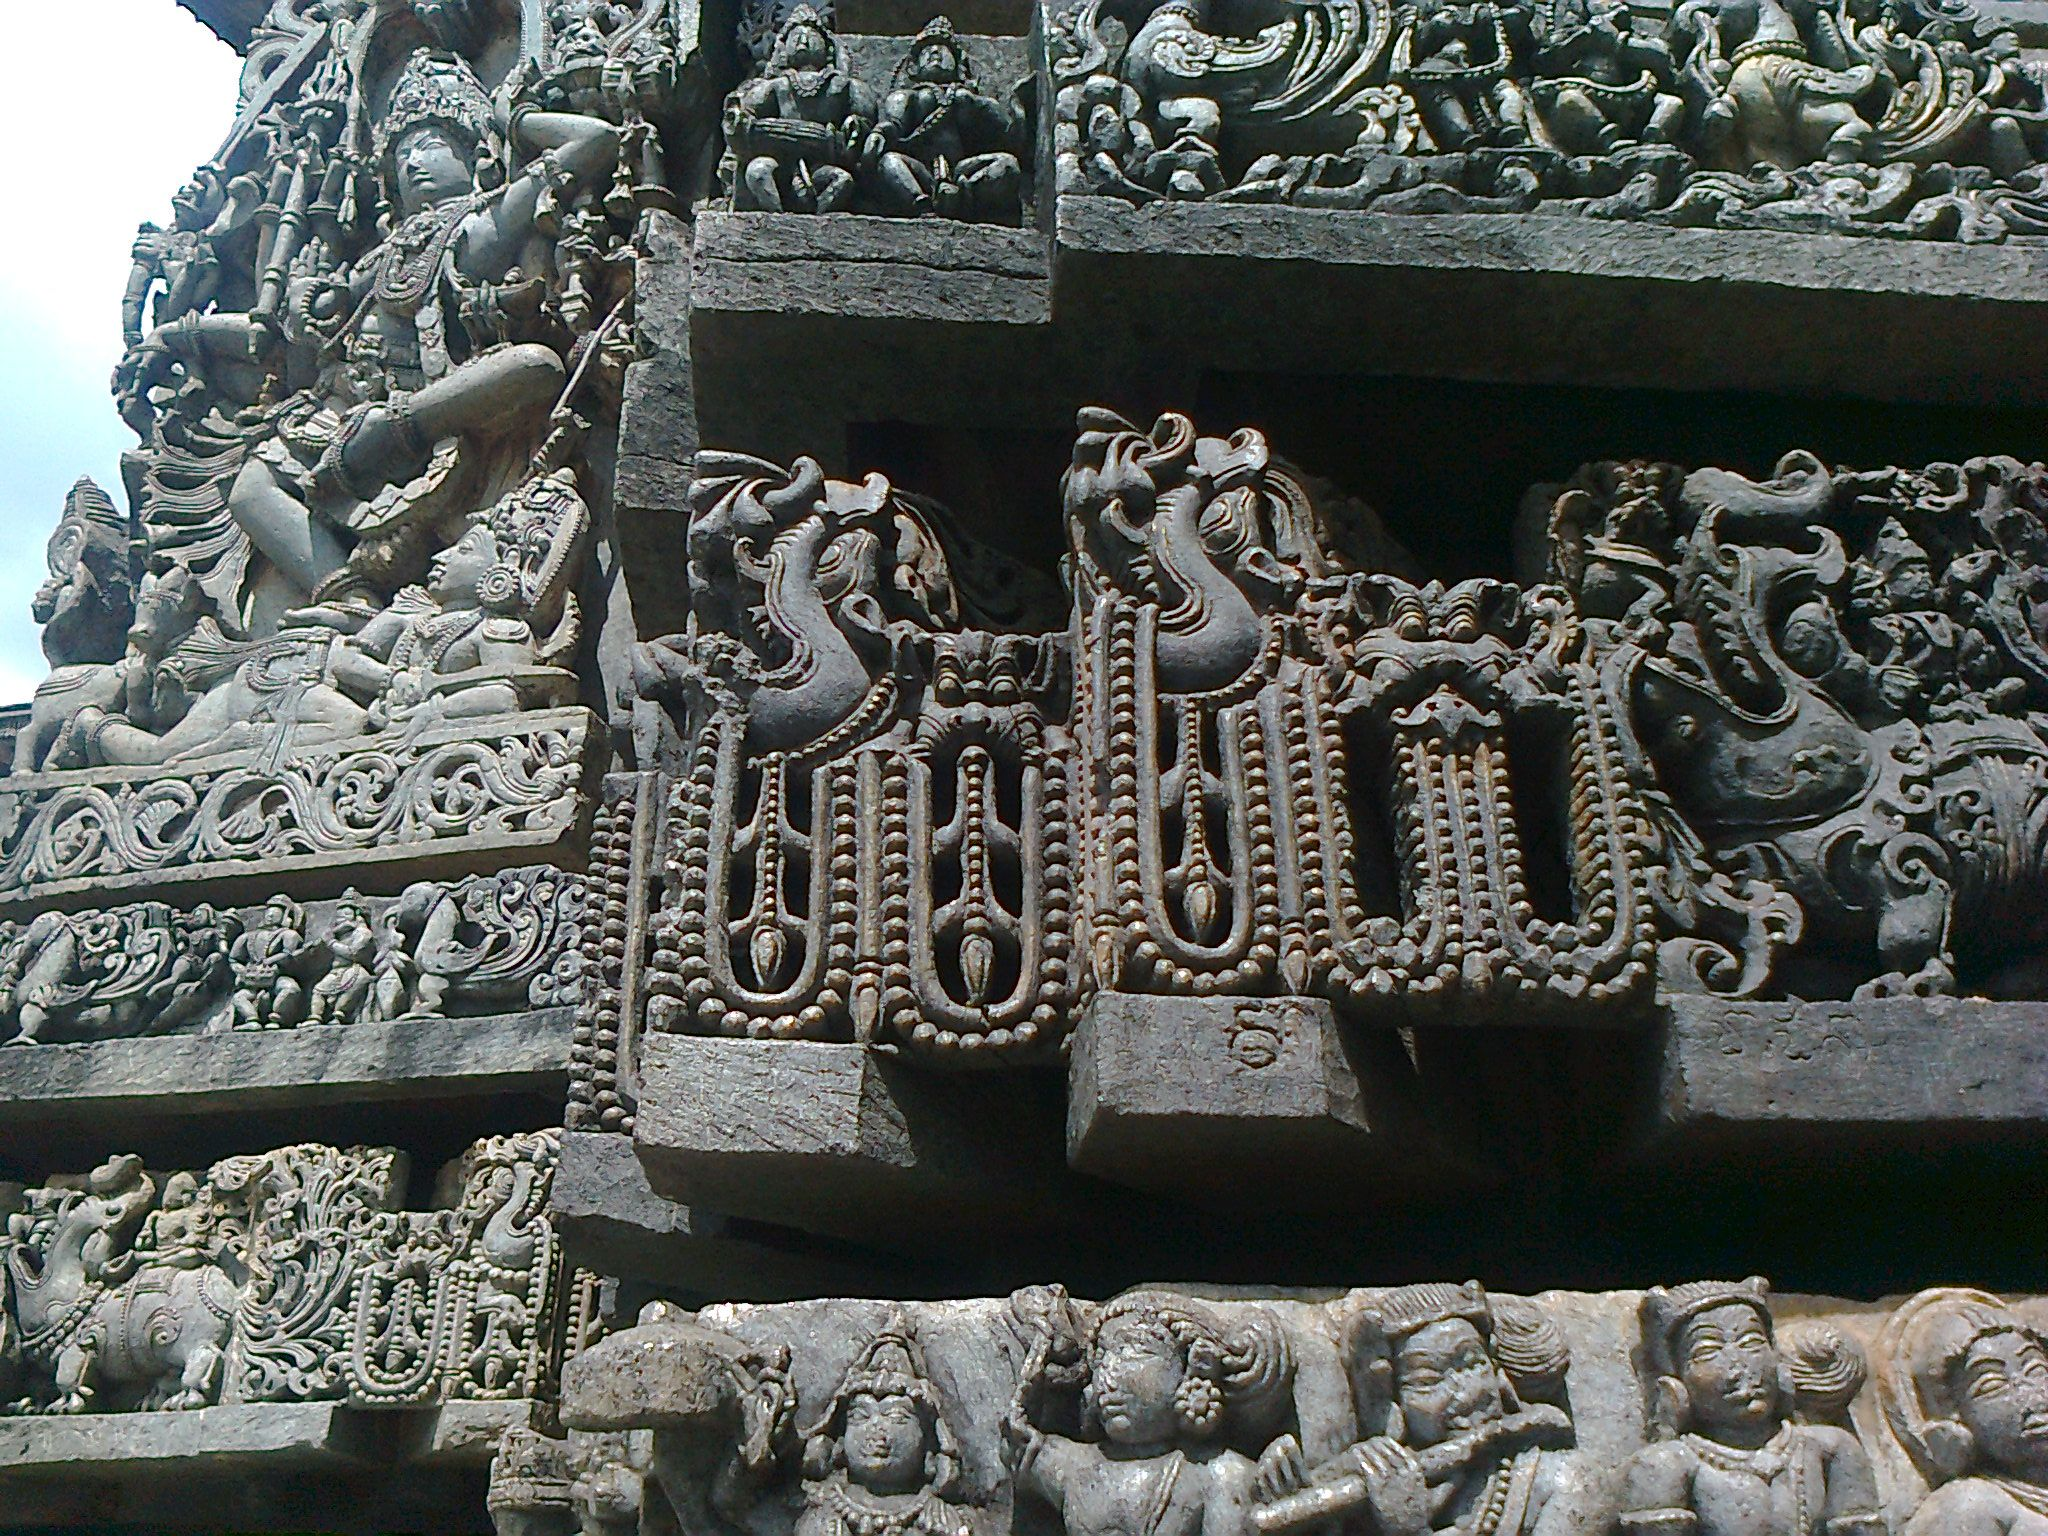 Beautiful pictures of gods and their temple - Find This Pin And More On Beautiful Sculptures Idols Of Hindu Gods And Goddesses By Drawnadpaint